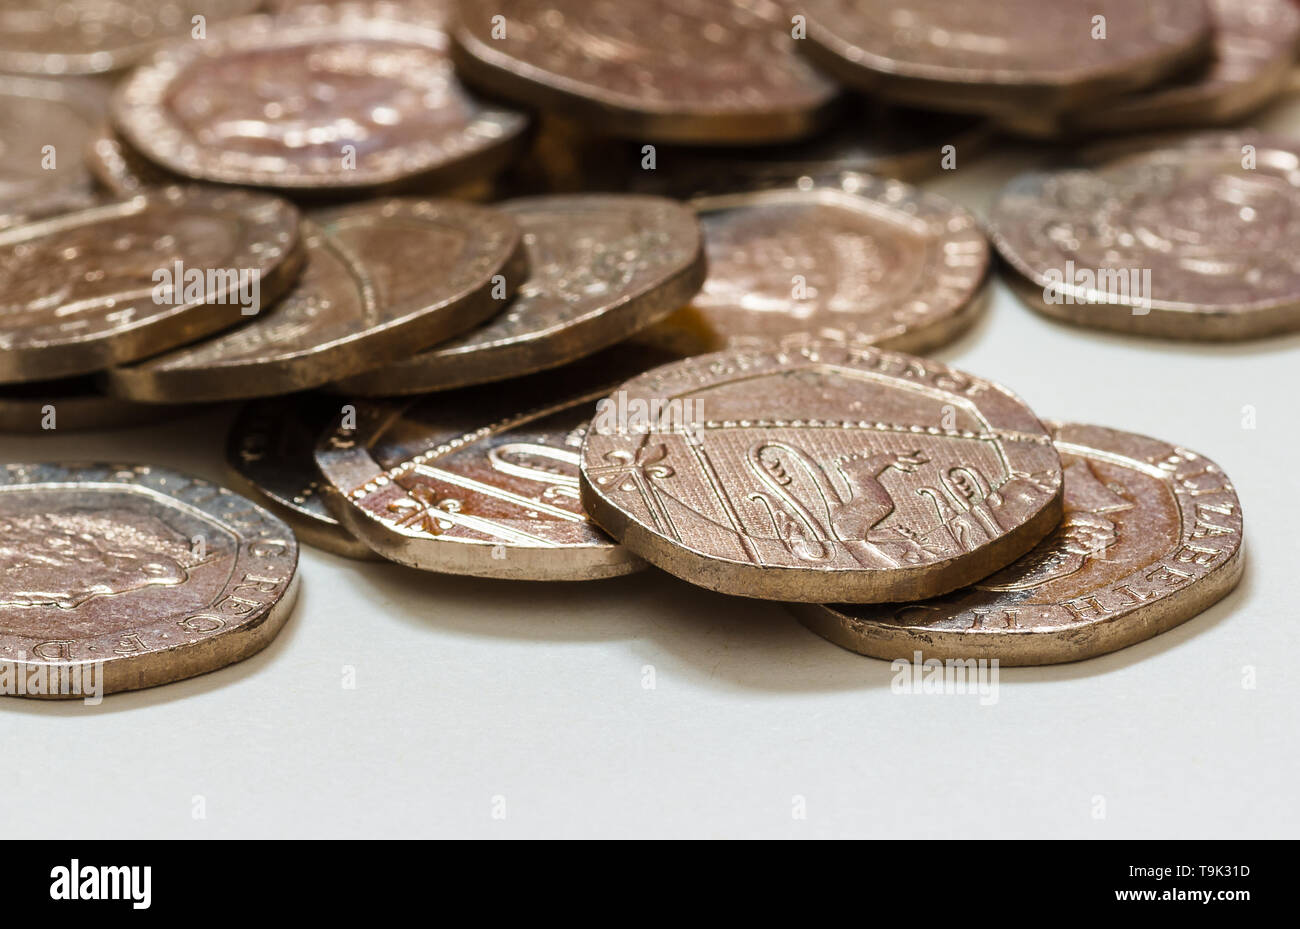 A pile of twenty pence pieces. - Stock Image